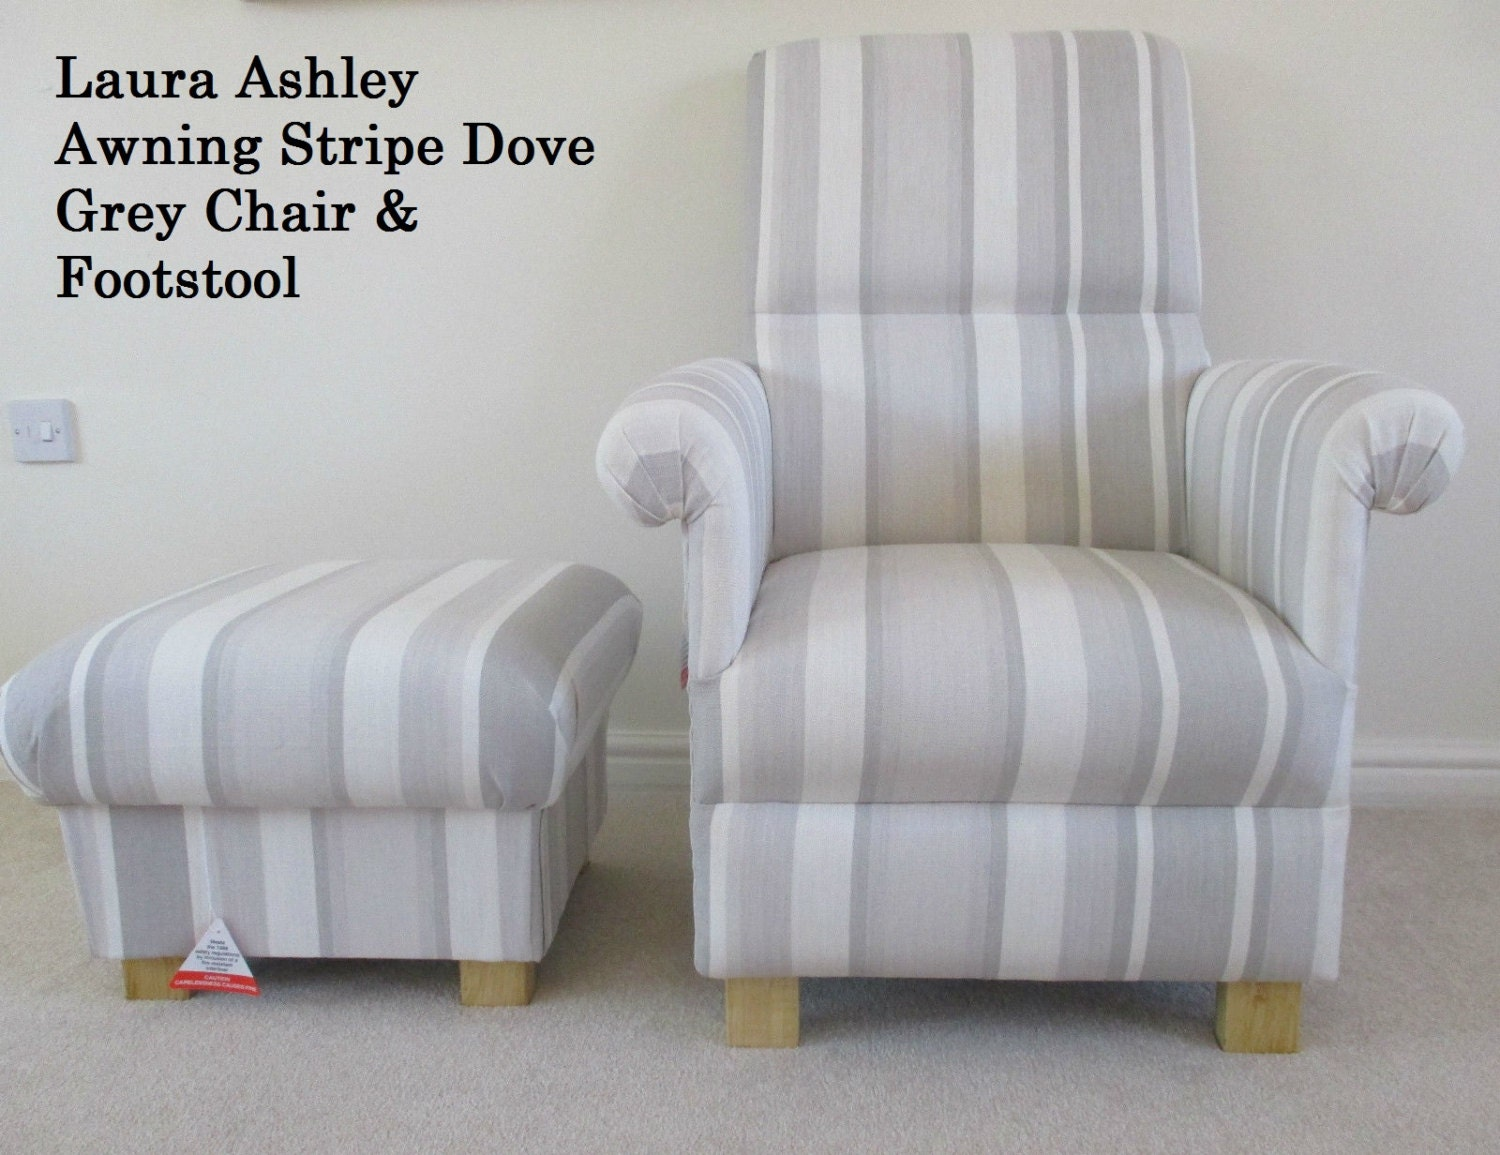 Grey And White Striped Accent Chair: Laura Ashley Awning Stripe Dove Grey Fabric Chair & Footstool